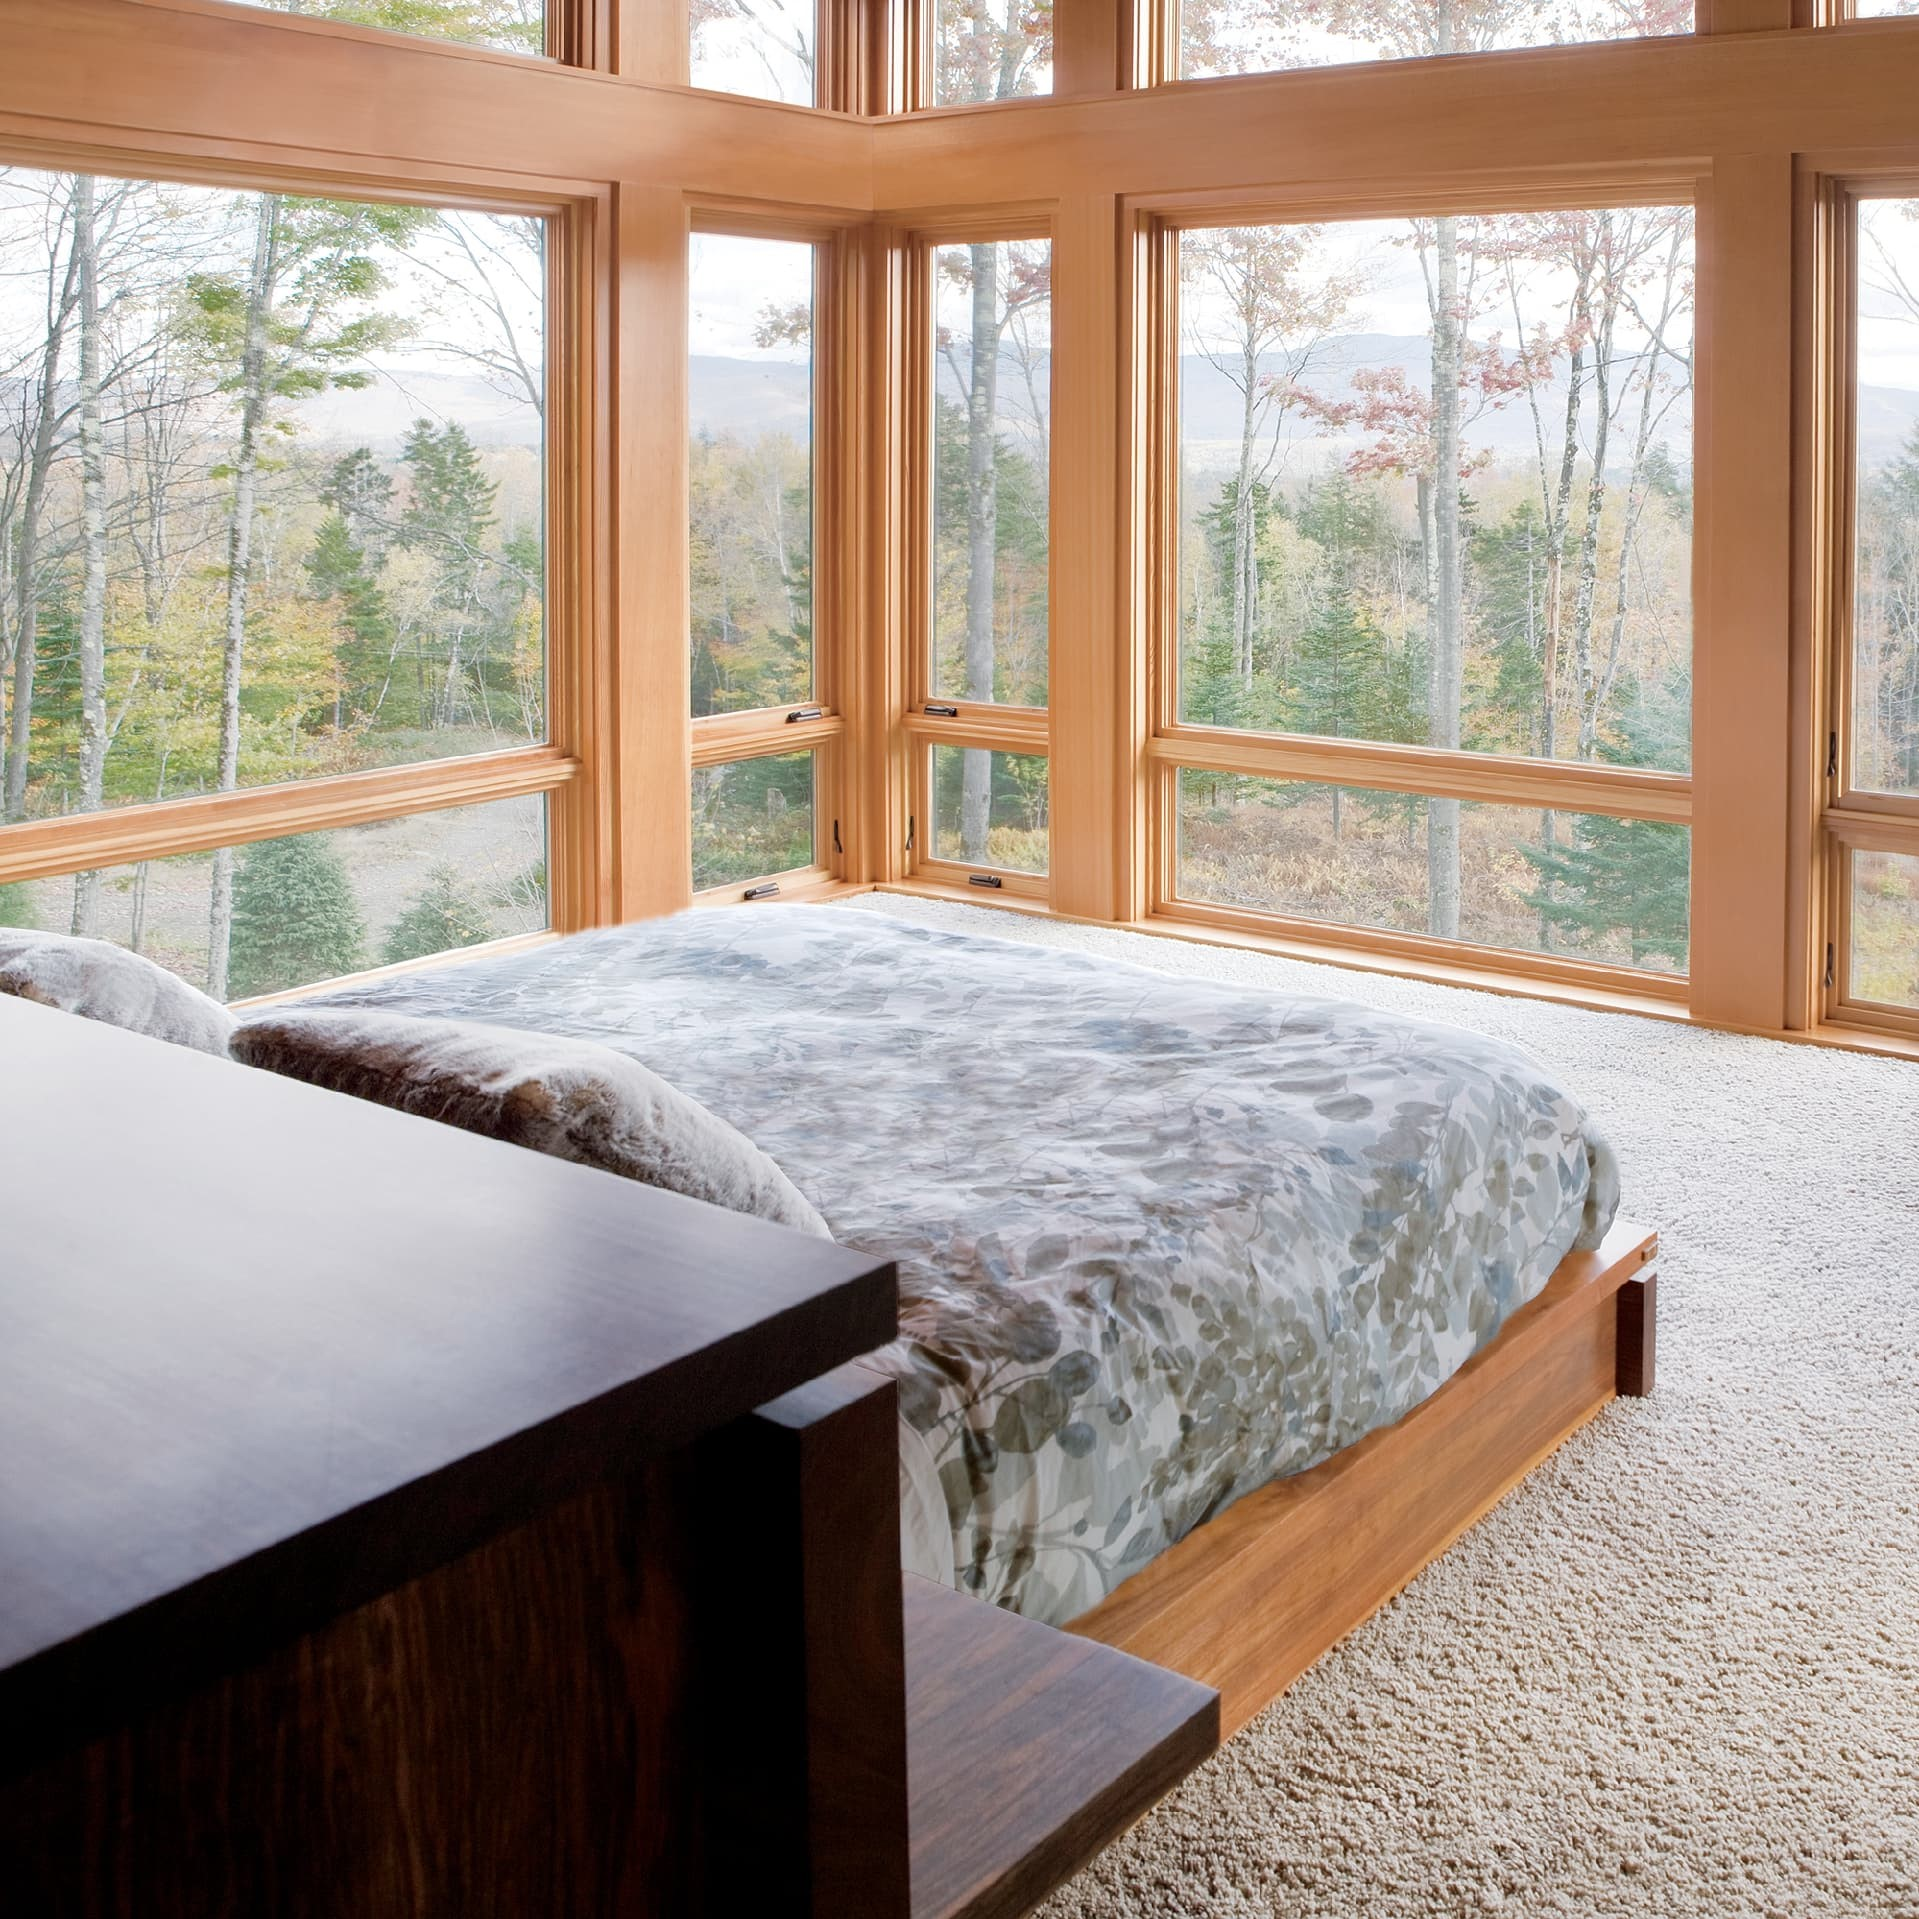 Wooden awning windows in bedroom